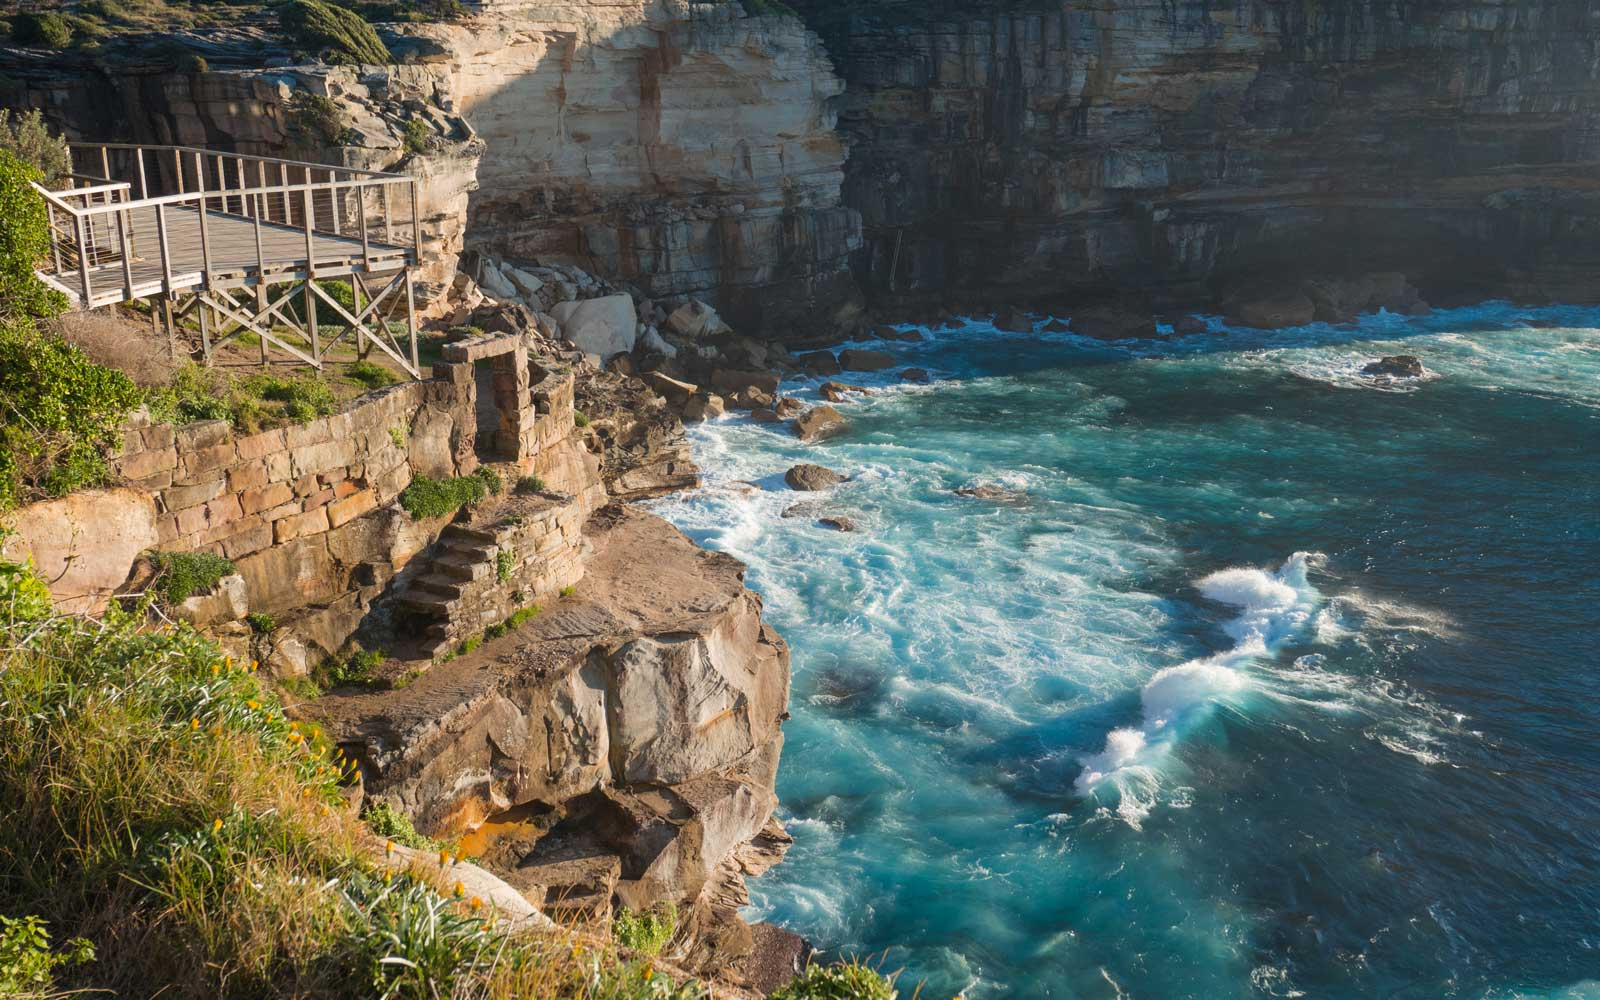 Selfie Deaths Have Become a 'Major Public Health Problem' As Tourists Ignore Warning Signs at Scenic Sydney Cliff